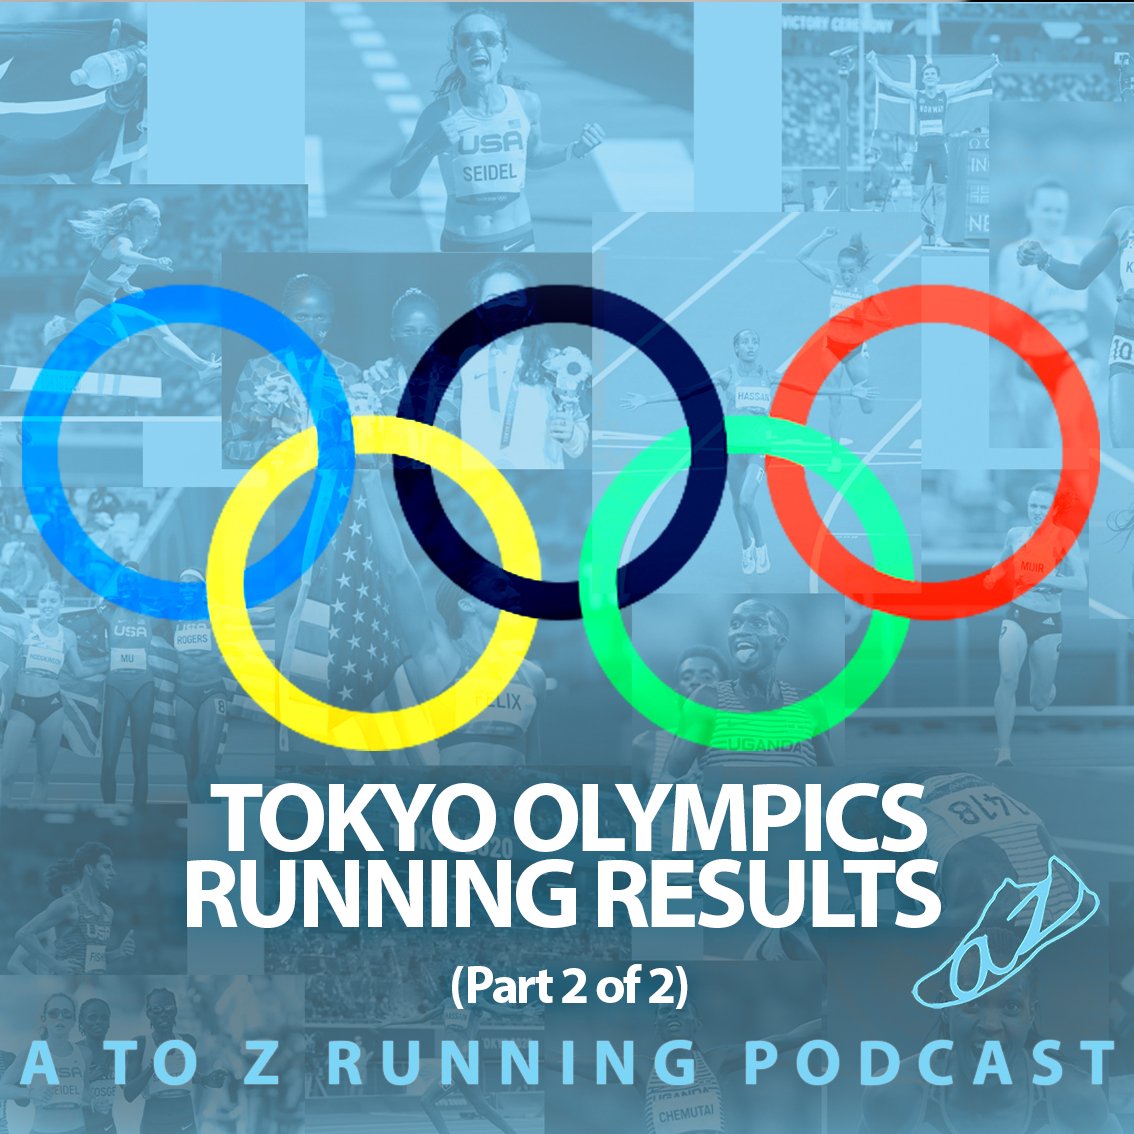 Tokyo Olympic Running Results